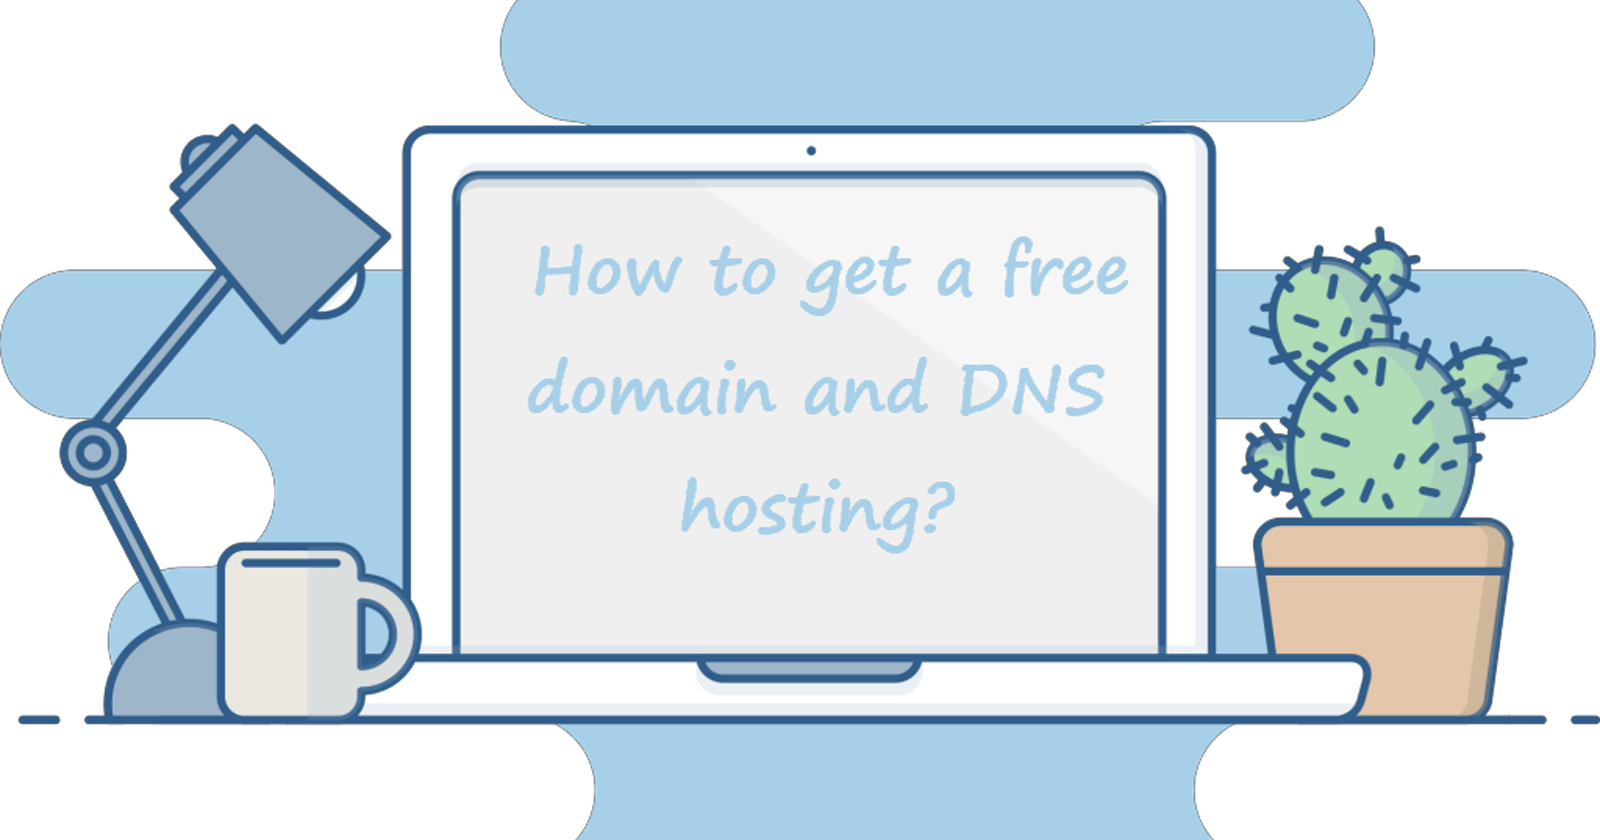 How to get a free domain and DNS hosting?